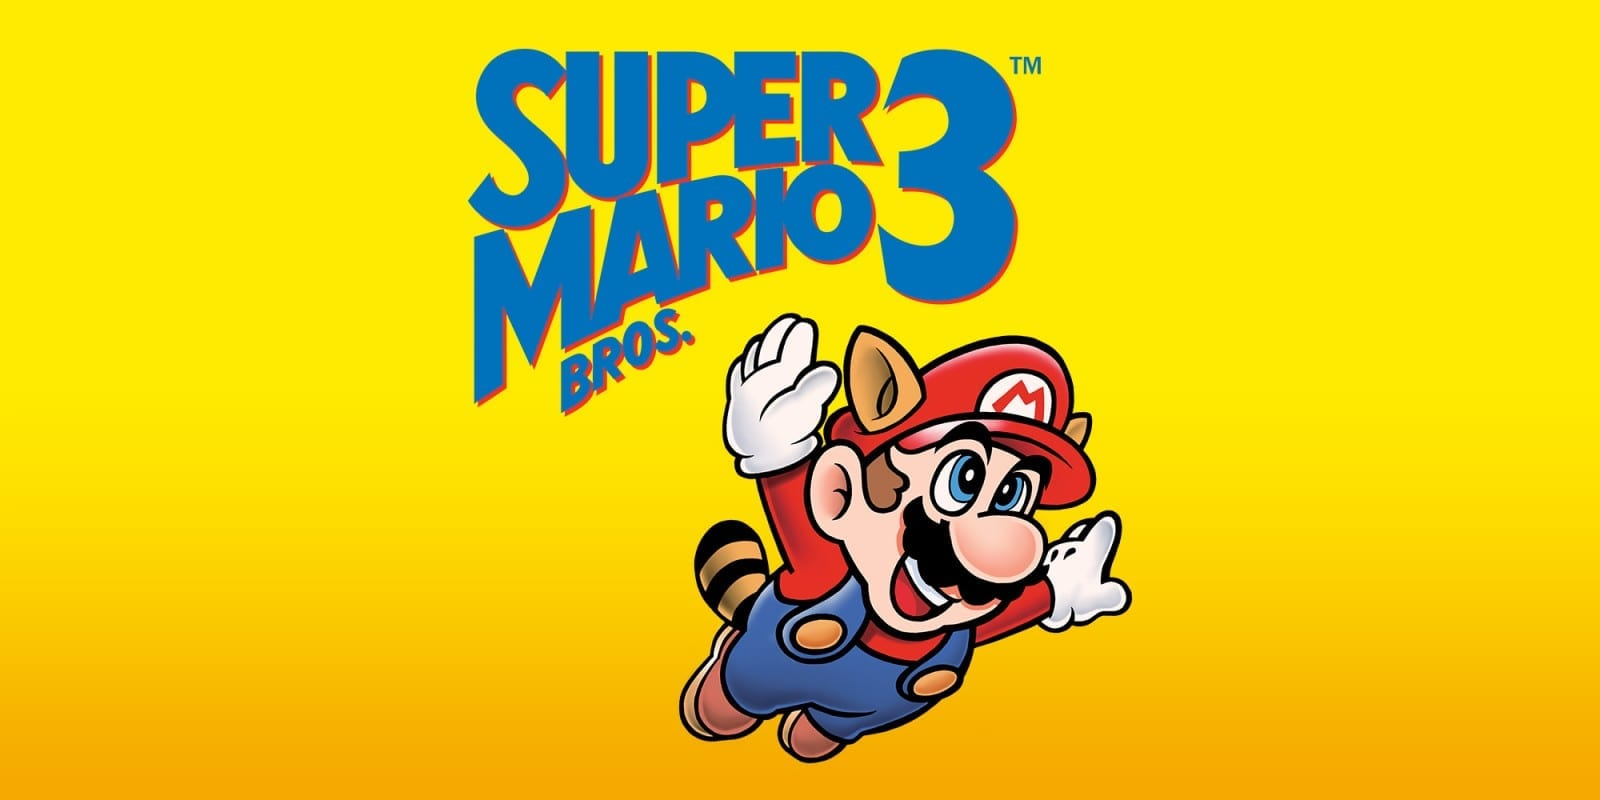 All Of The Mario Games Ranked from Best to Worst